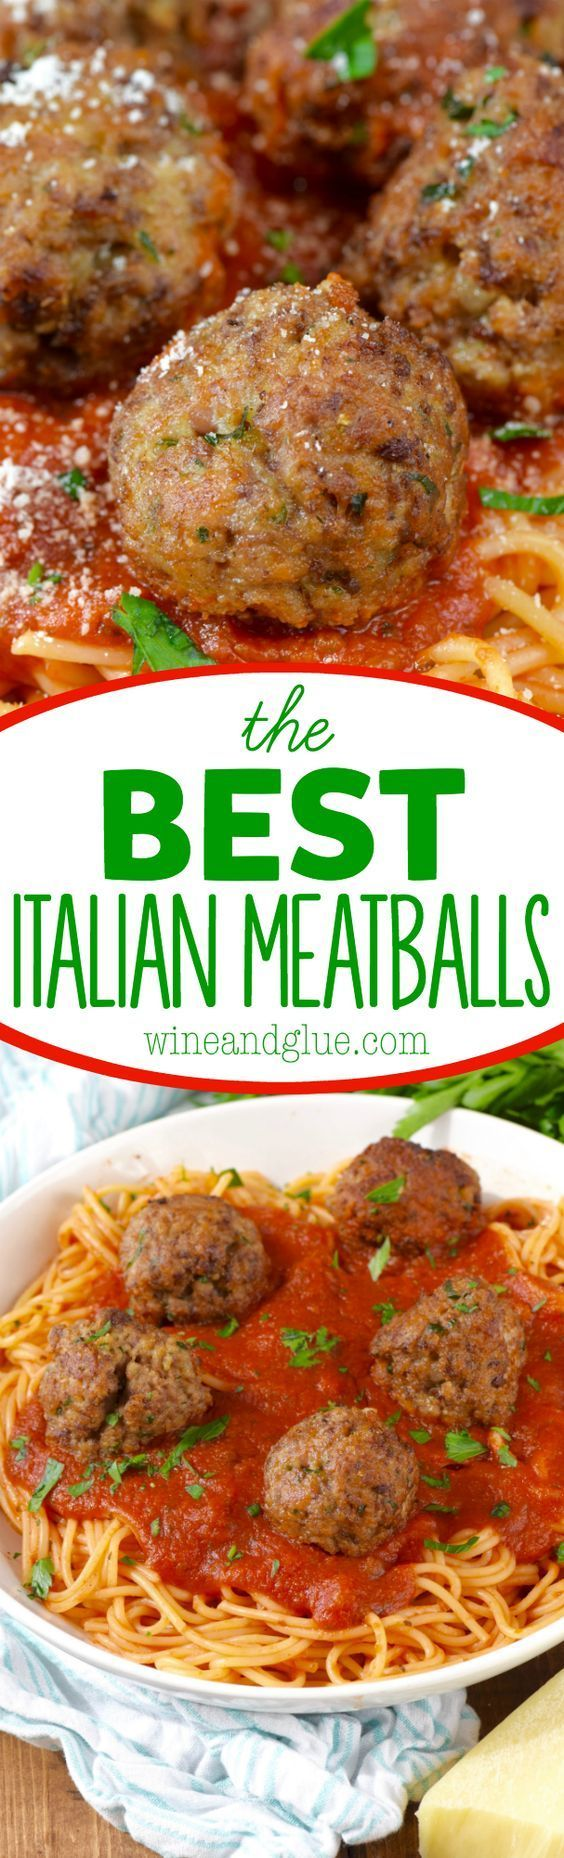 These are the BEST Italian Meatballs! My Italian grandmother's recipe, the word perfect doesn't even begin to cover it. #italianRecipe